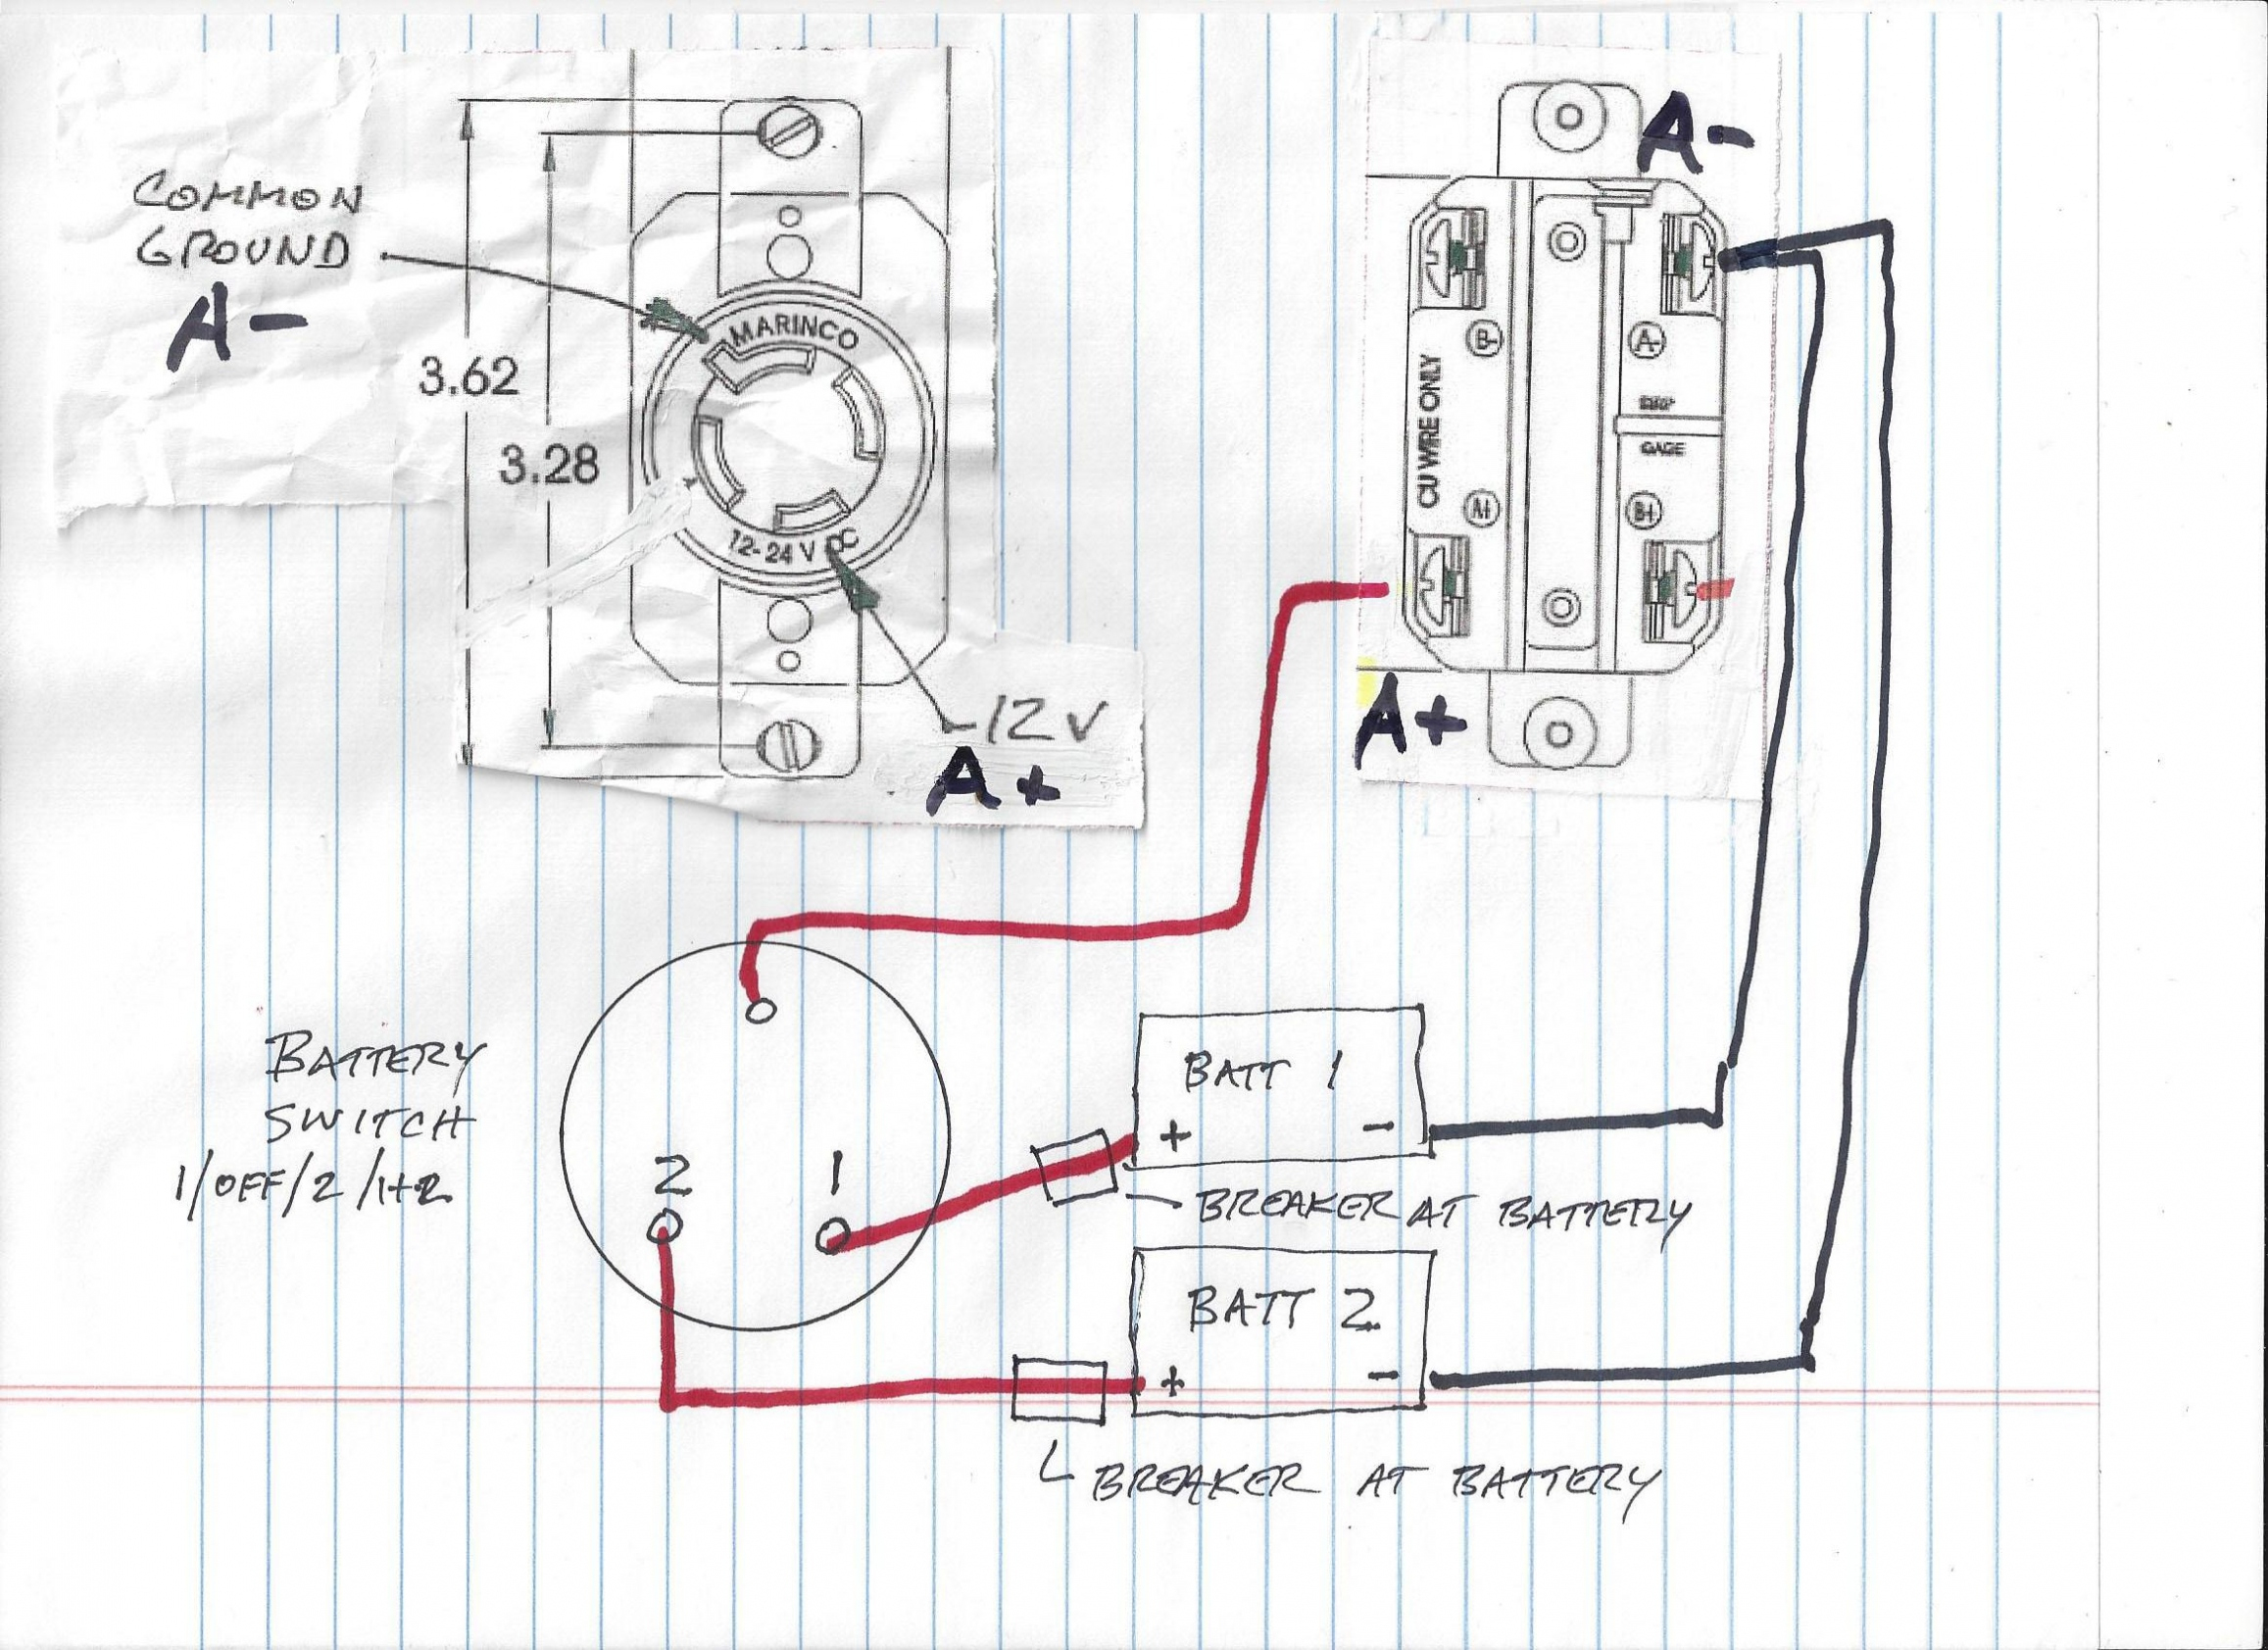 24 Volt Wiring Diagram